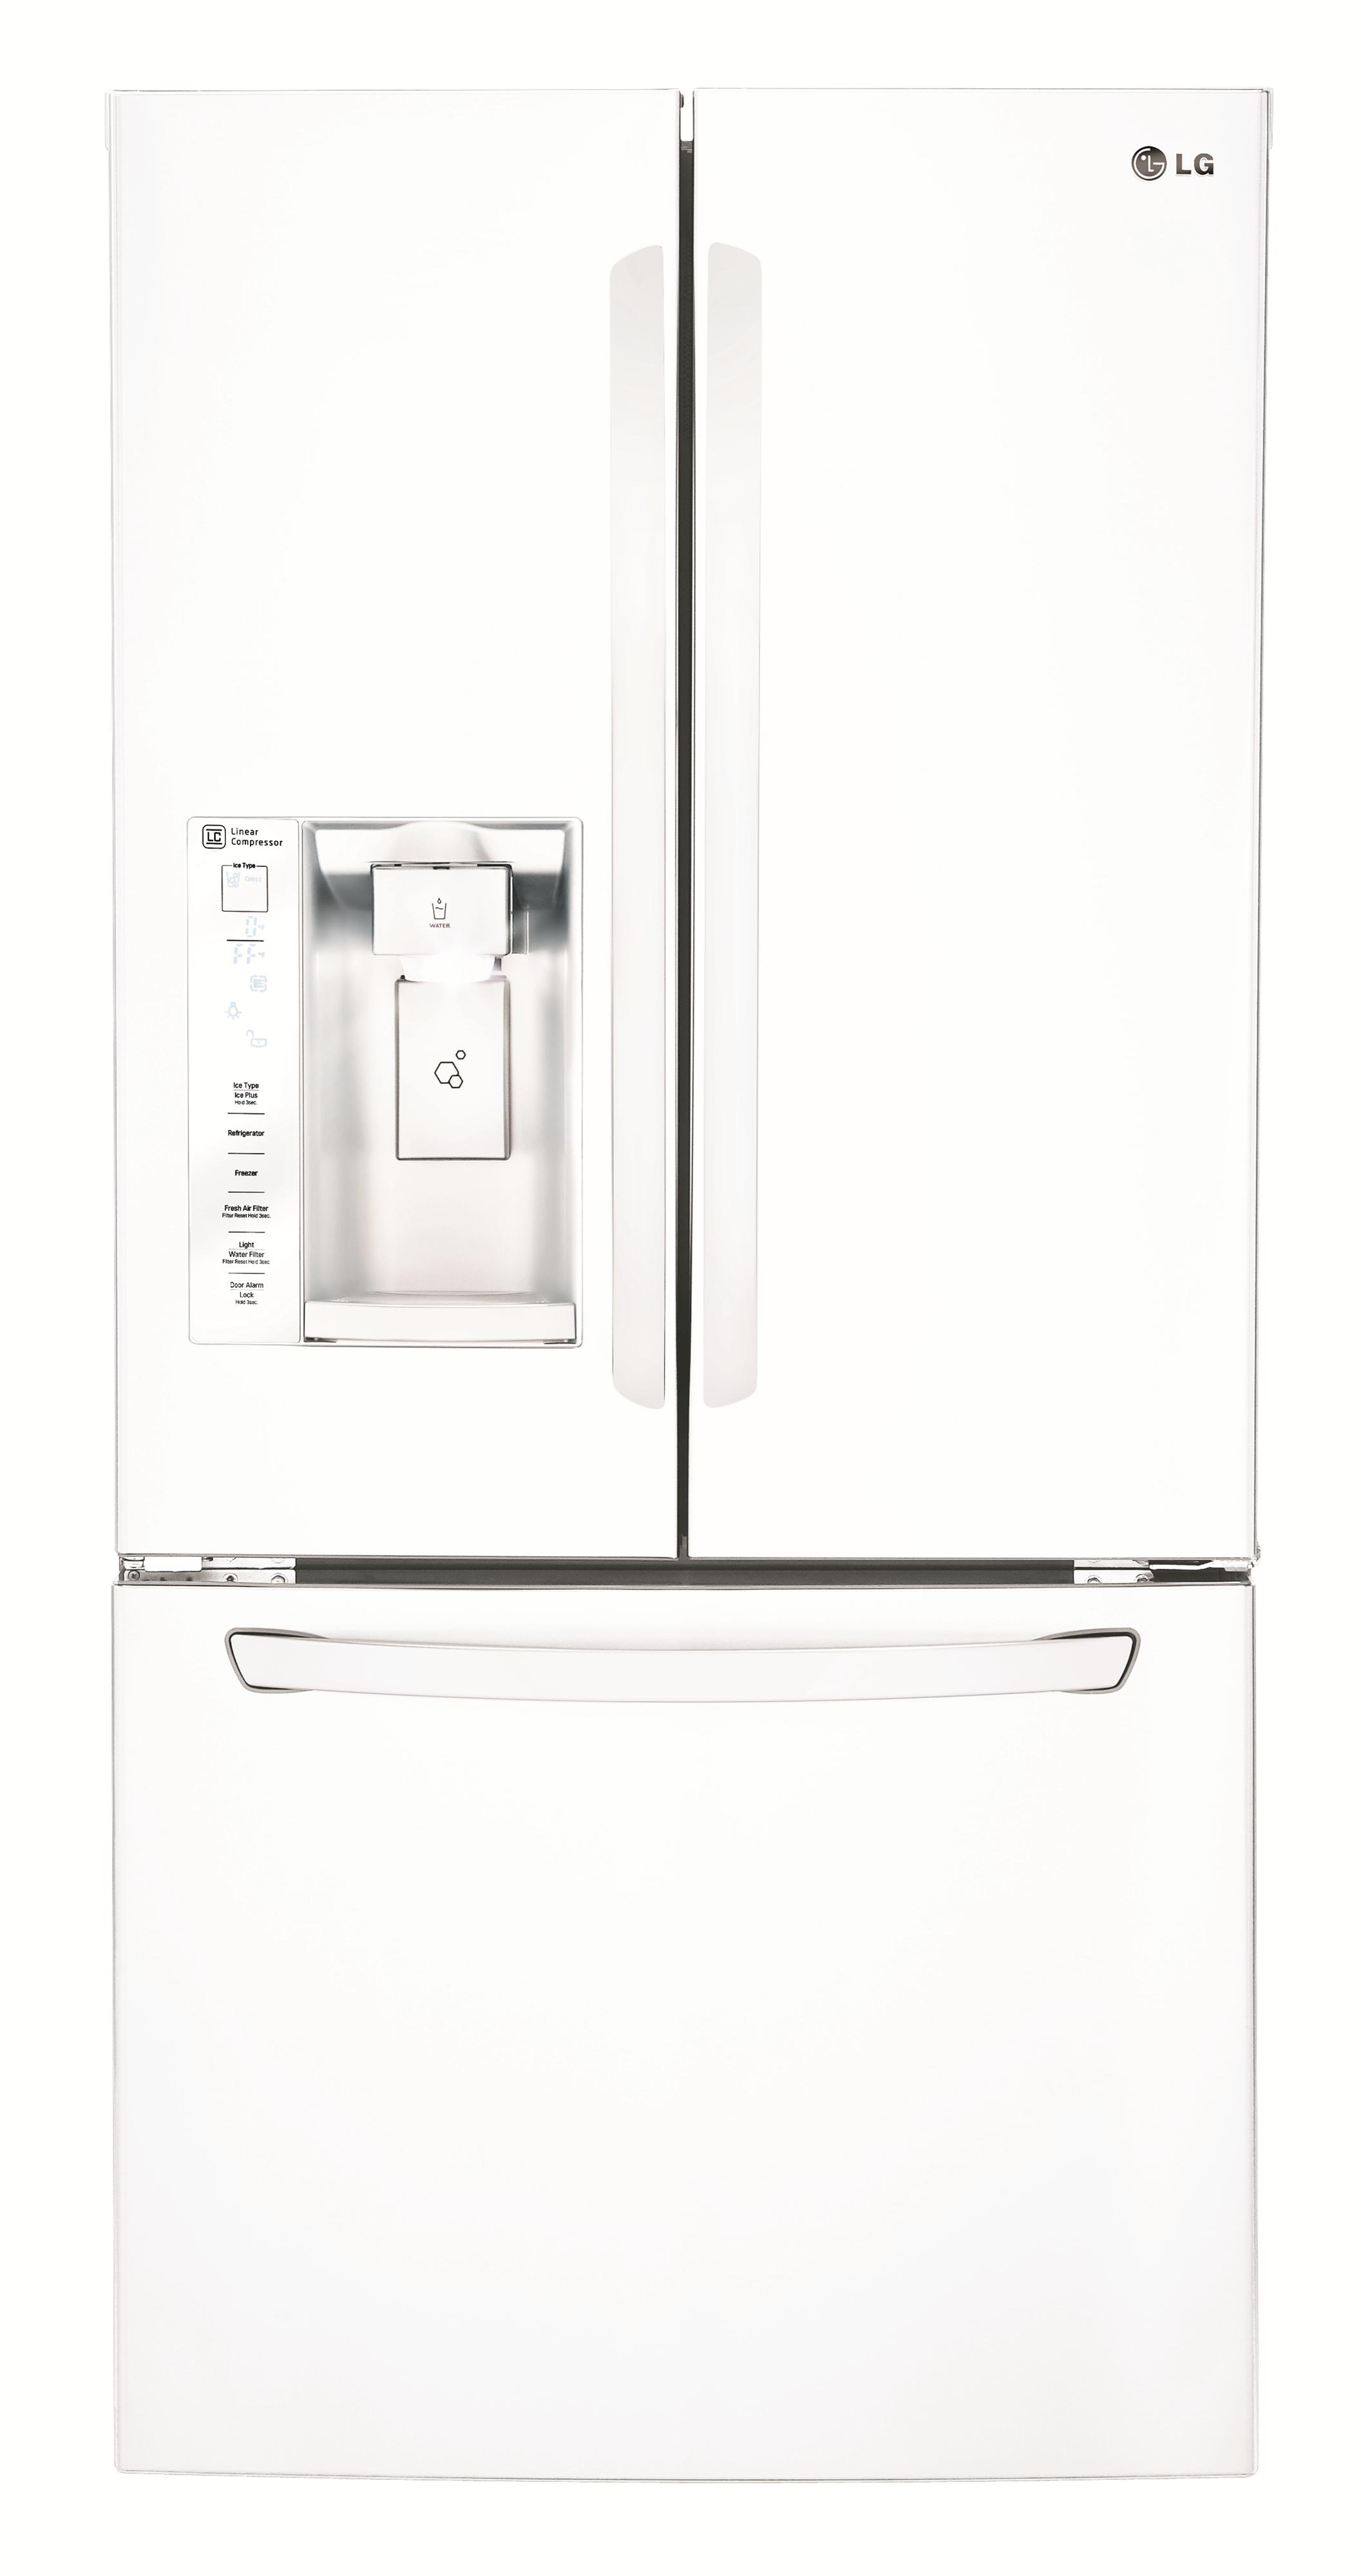 LG Appliances French Door Refrigerators 24.2 Cu. Ft. 3 Door French Door Fridge - Item Number: LFXS24623W